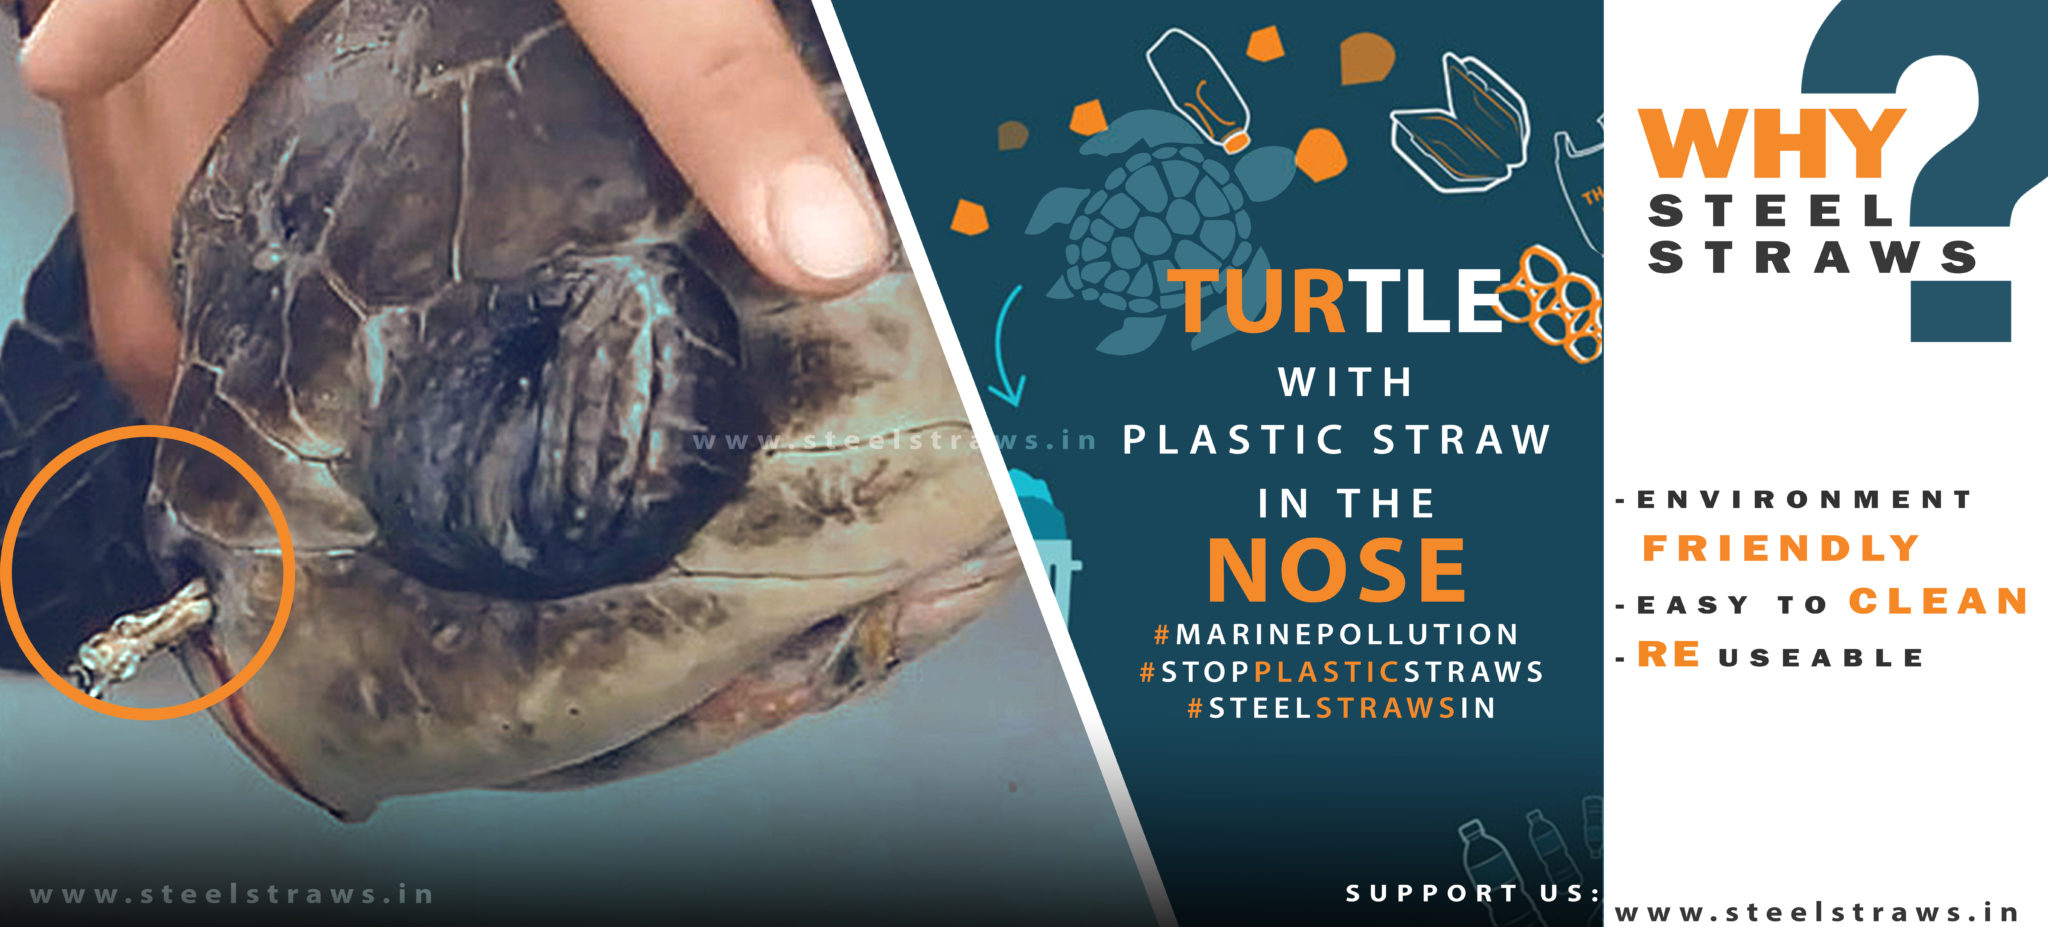 turtle with plastic straw stuck